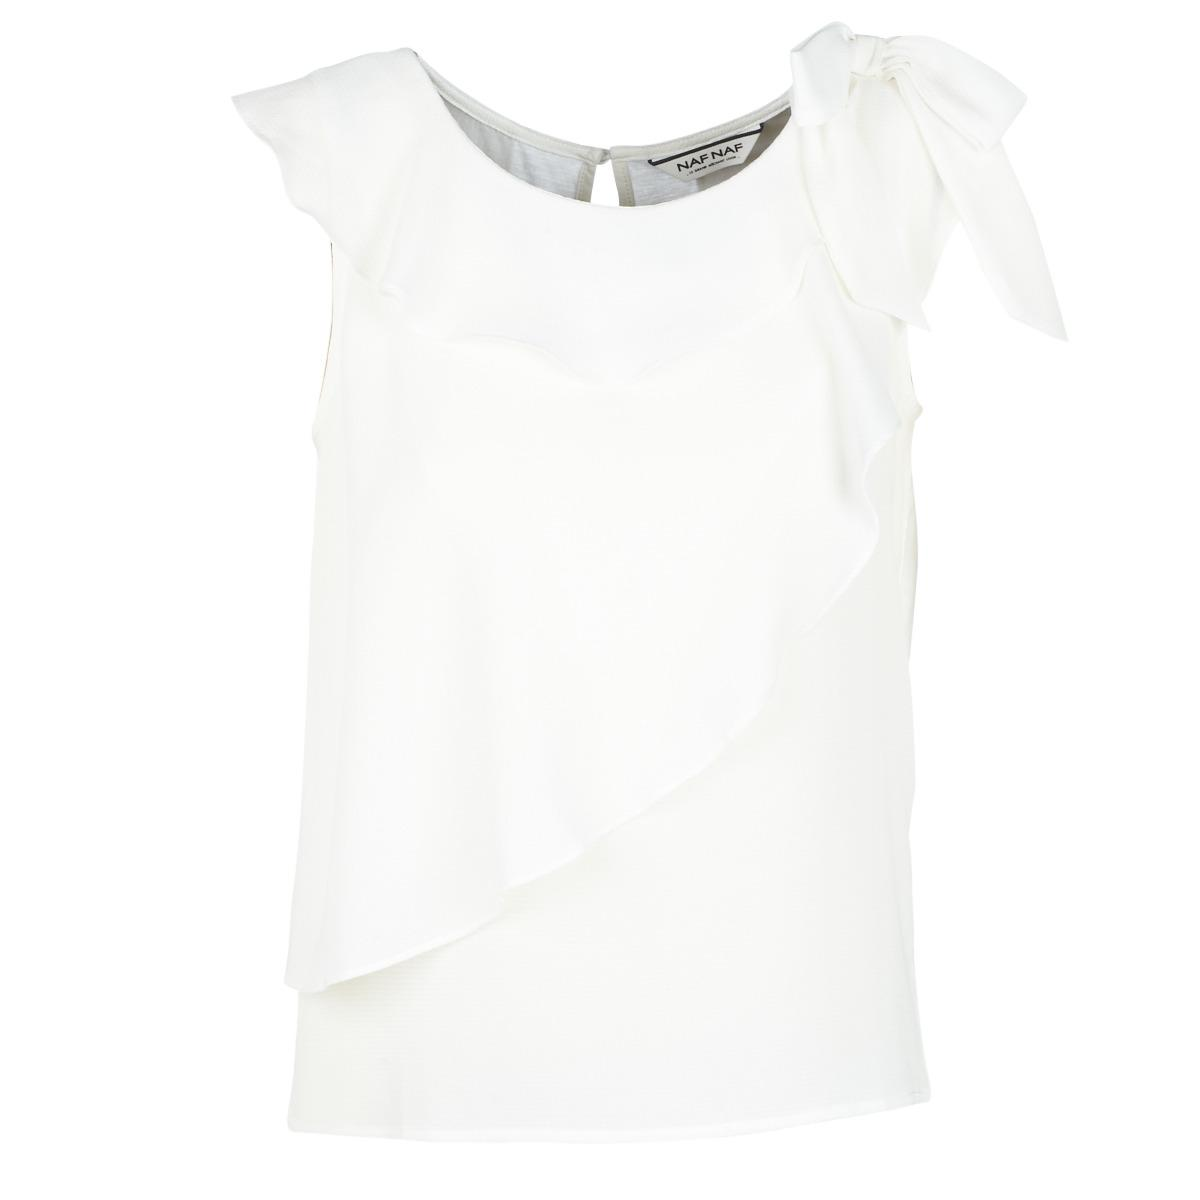 Lyst Blouse T1 Naf Women's In Okirie White Clr3jq54a EHD92I